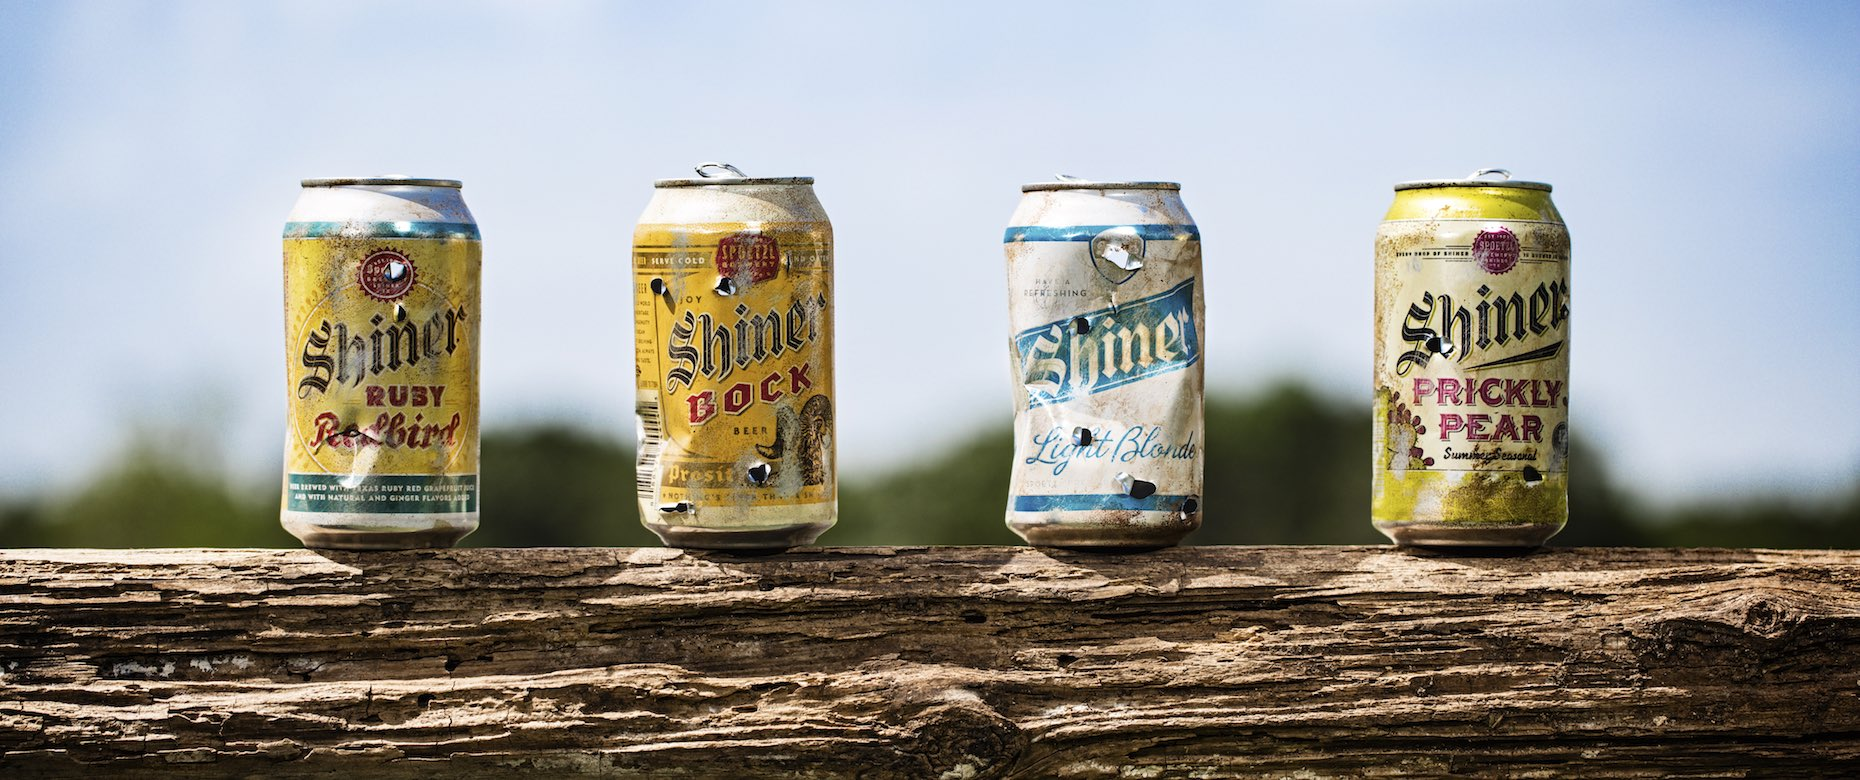 Worn Shiner beer cans used for target practice.